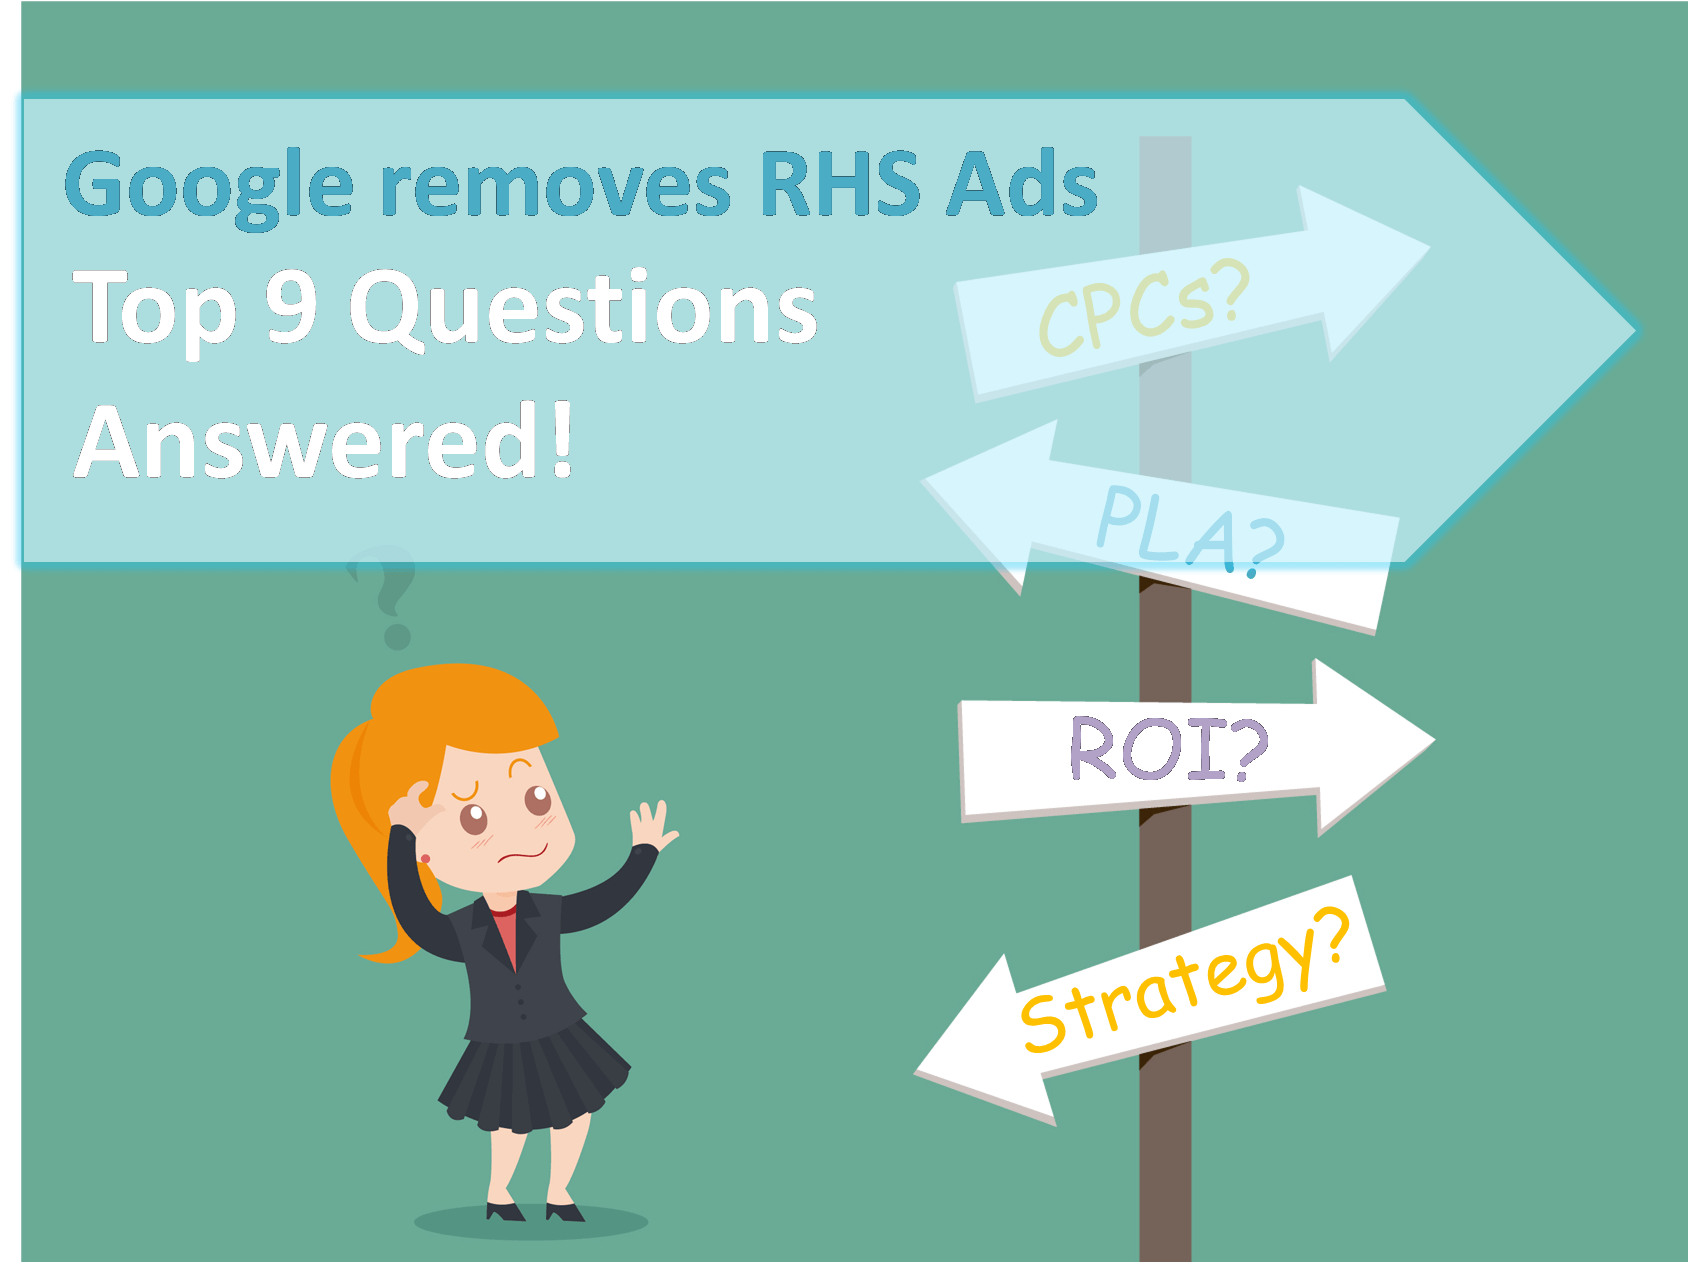 Google removing RHS Ads